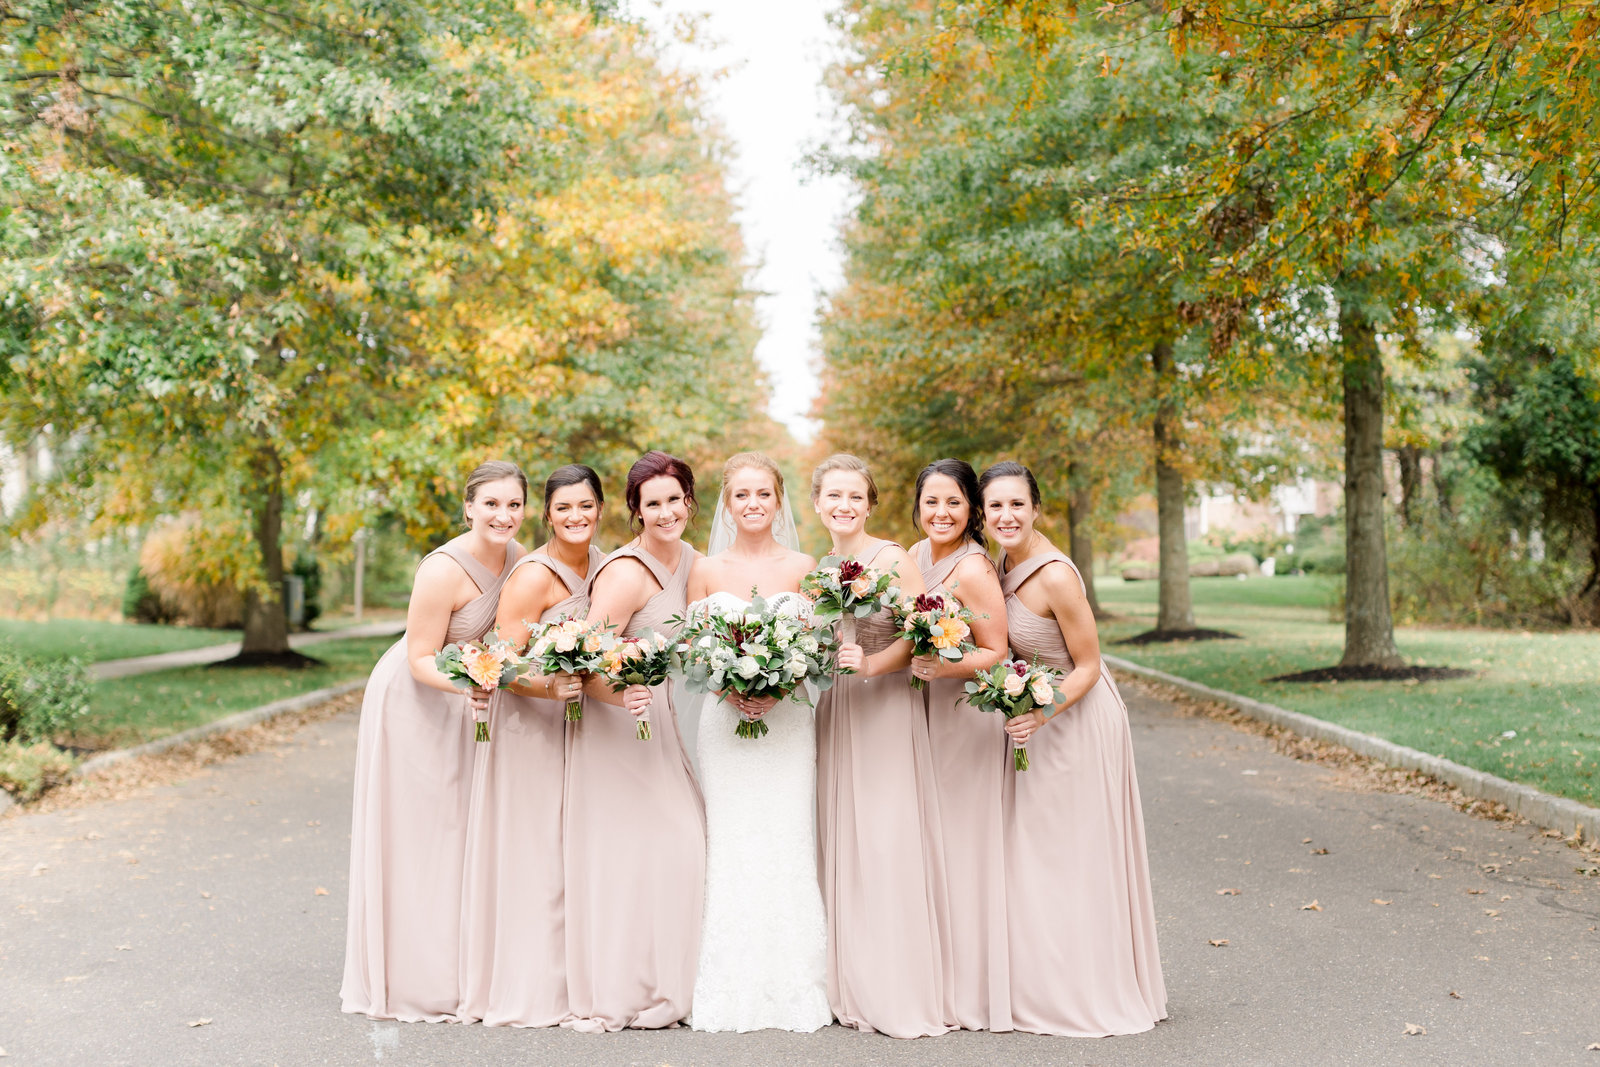 Fox_Miller_Wedding-BridalParty-154